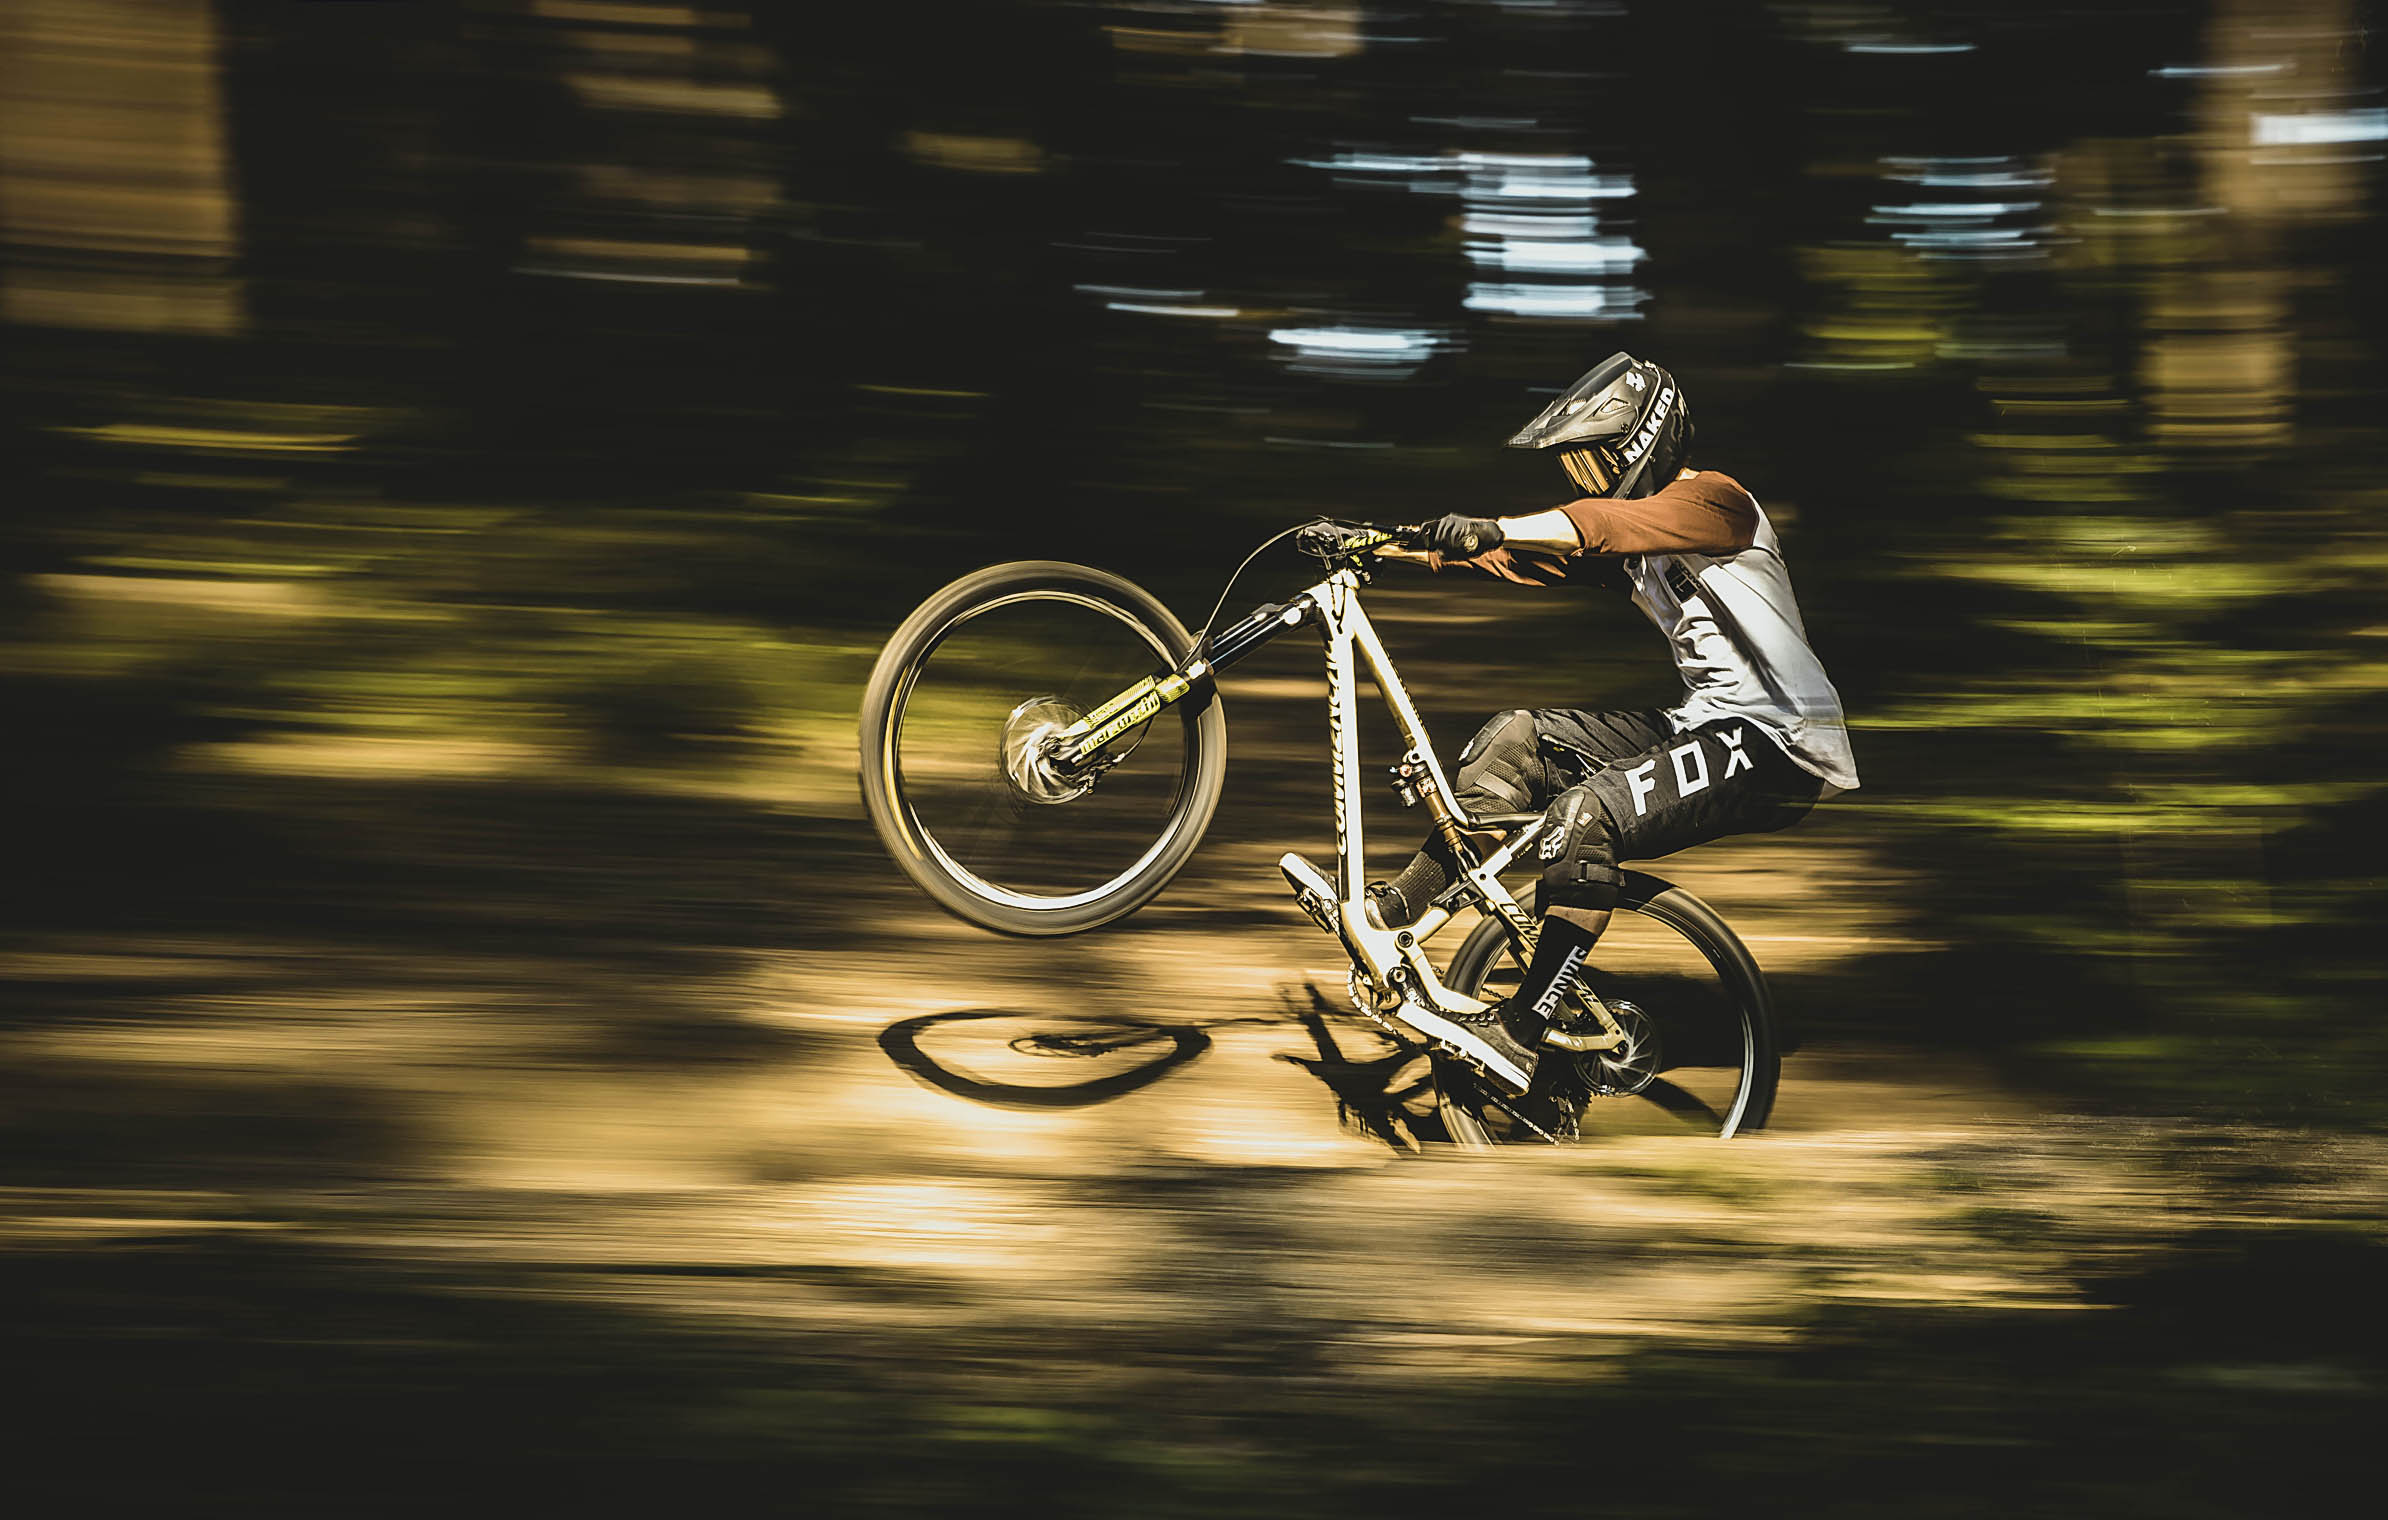 graz_mtb_enduro_california_pascal_Engel_penning_shot_fox_commencal_wheelie